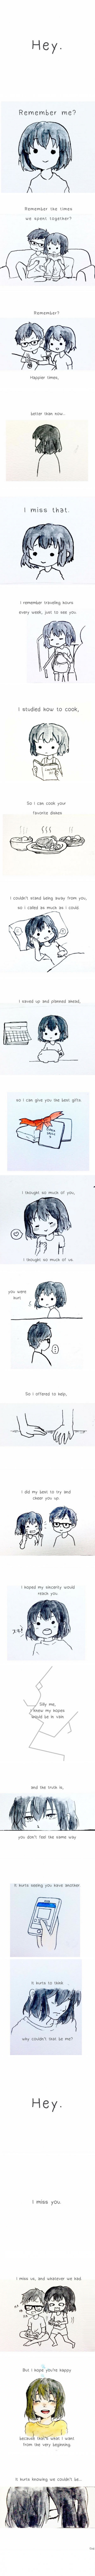 This comic about long distance relationship is sadly true (By SisiwAko)